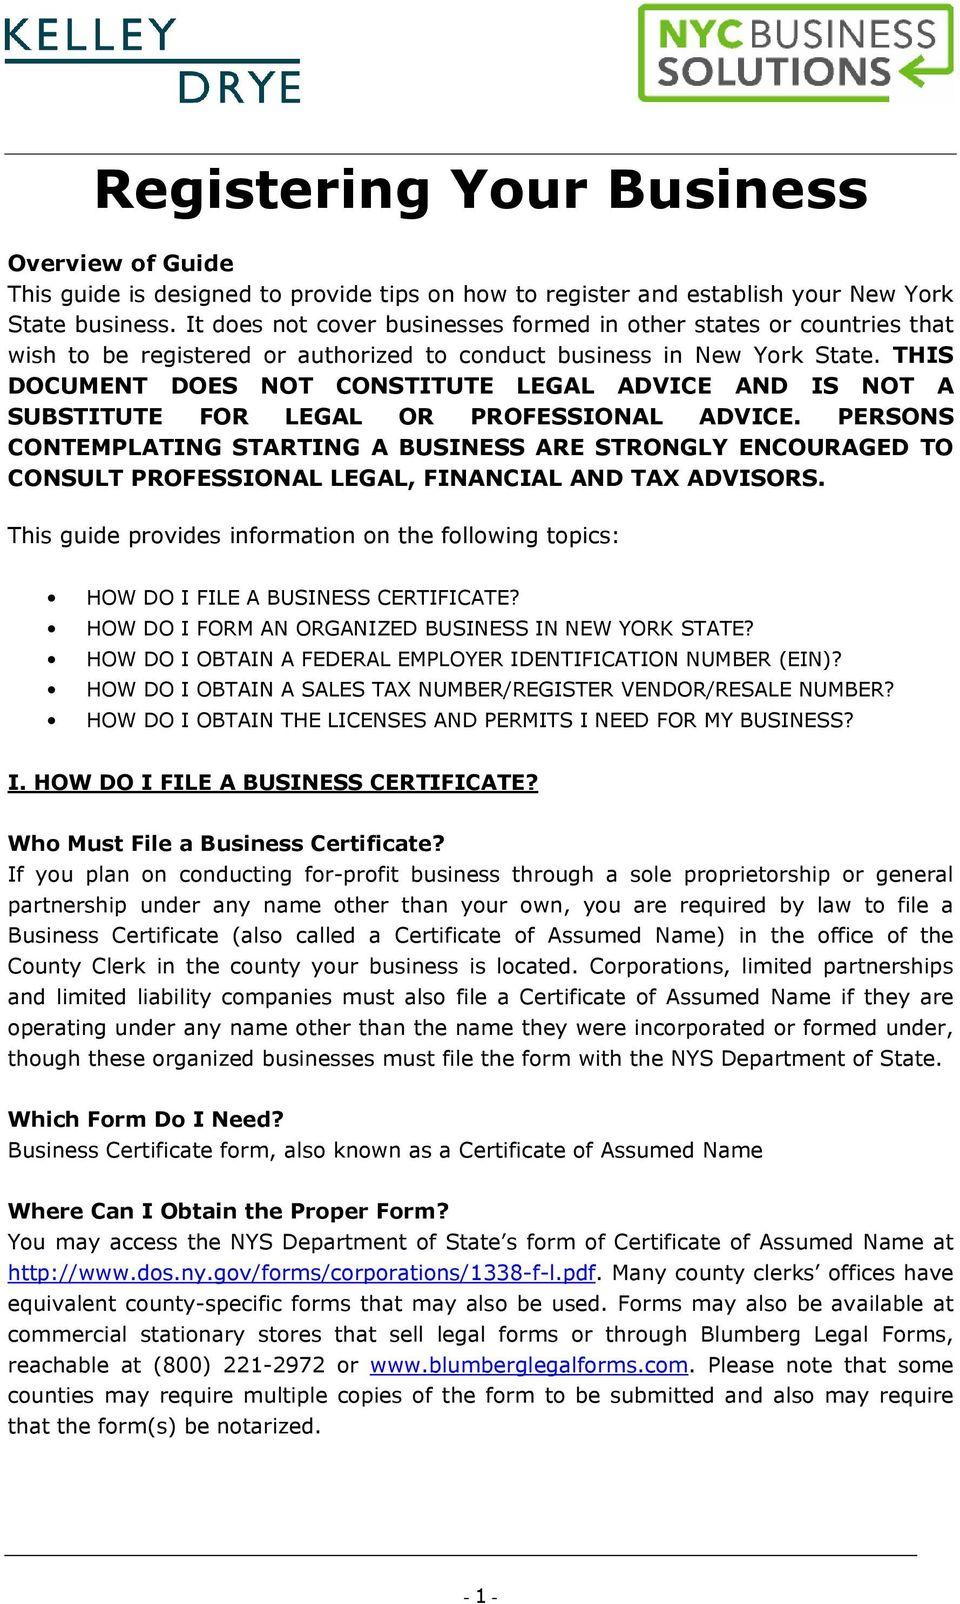 Registering Your Business - PDF